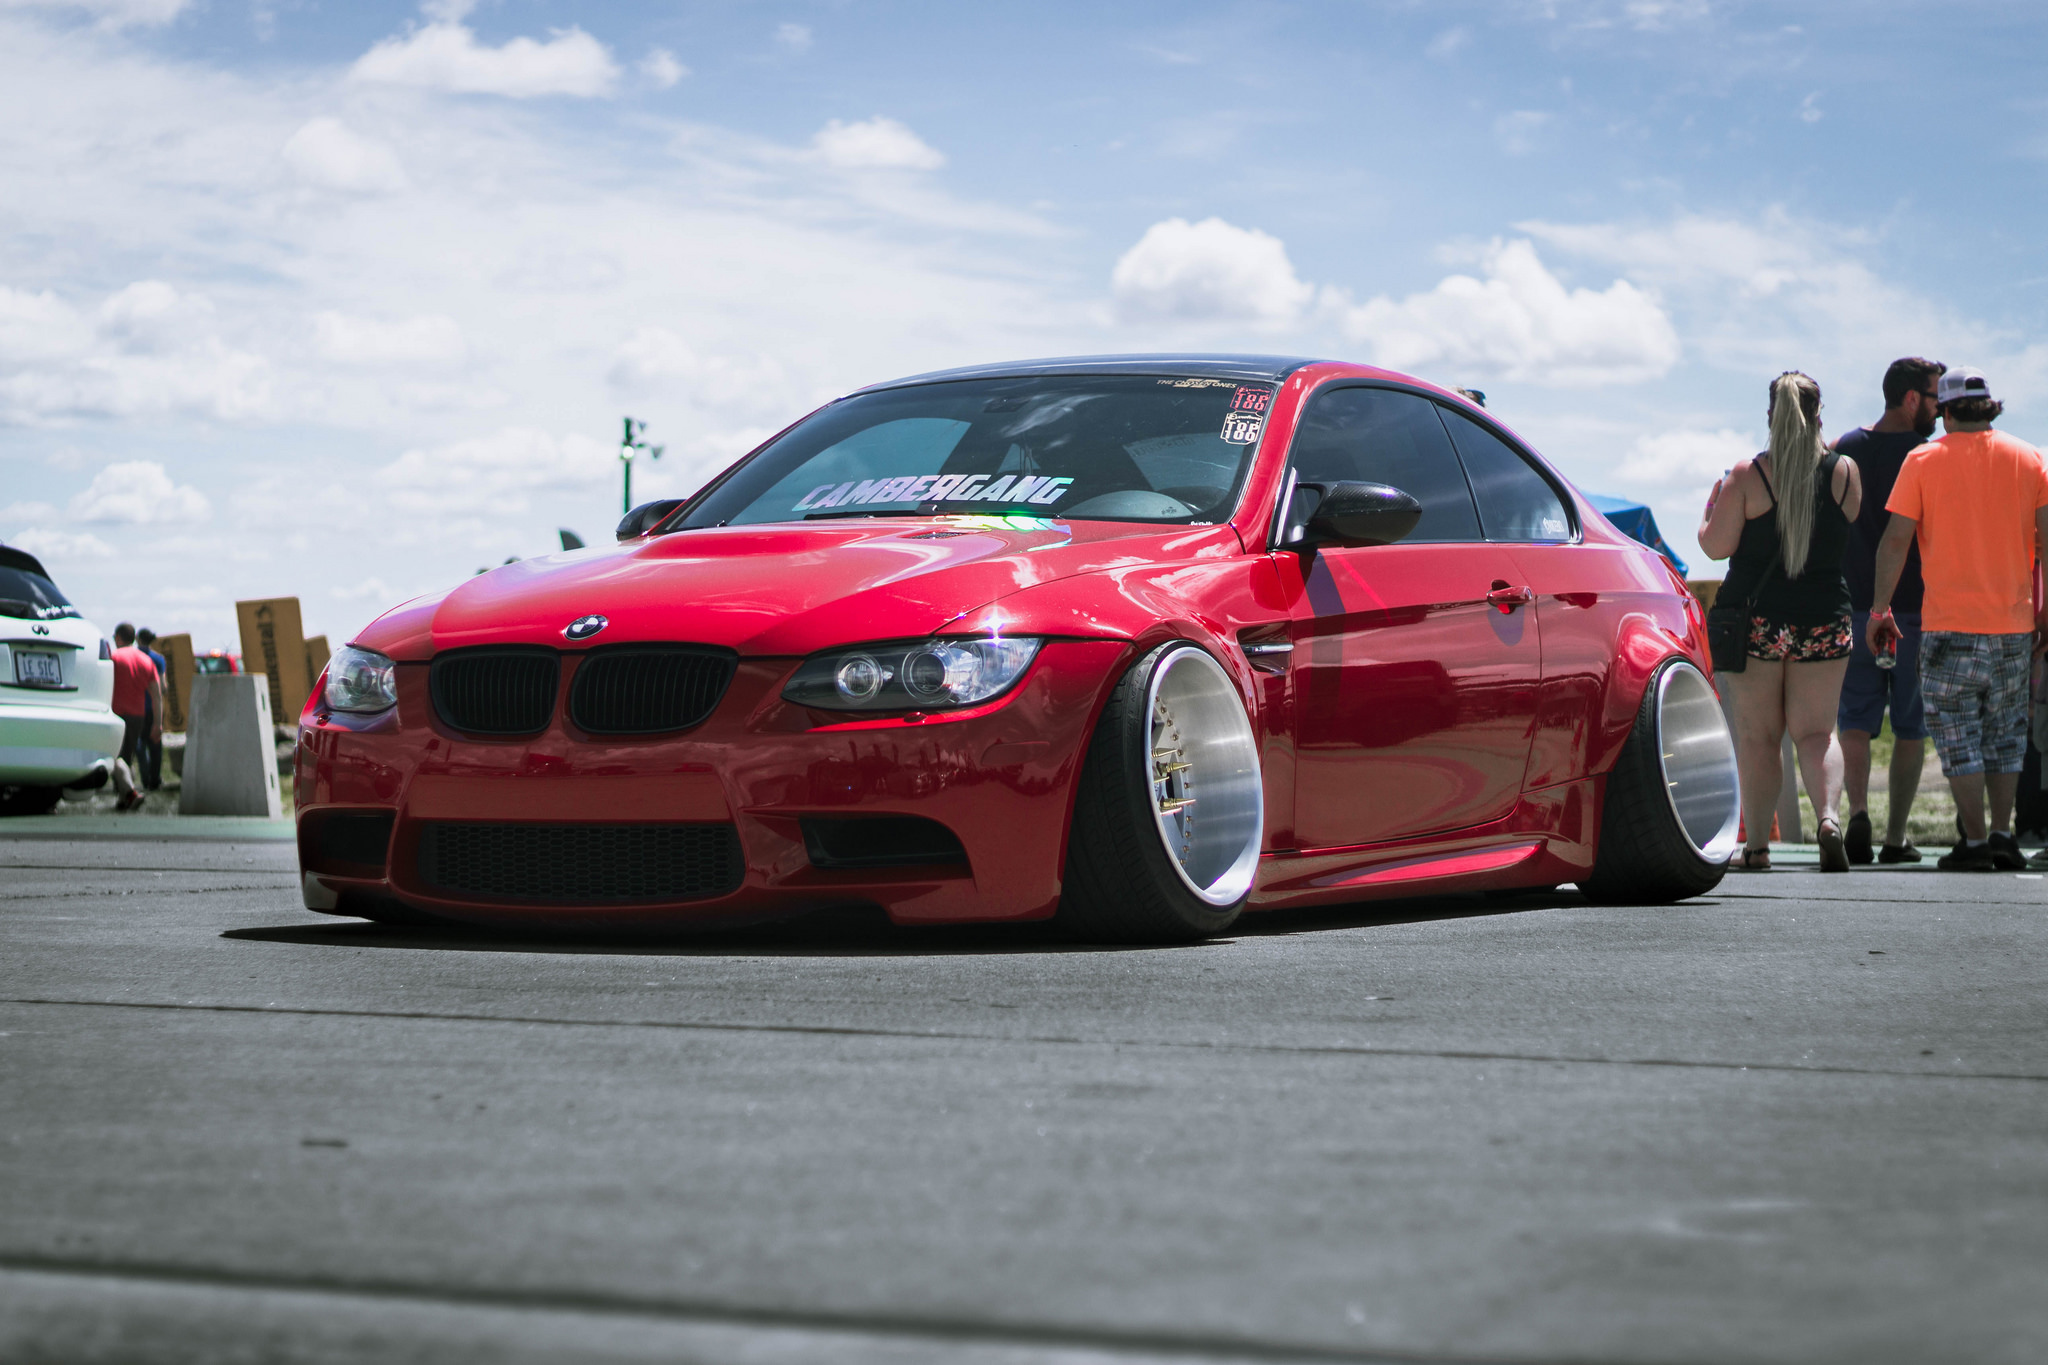 Bad Camber